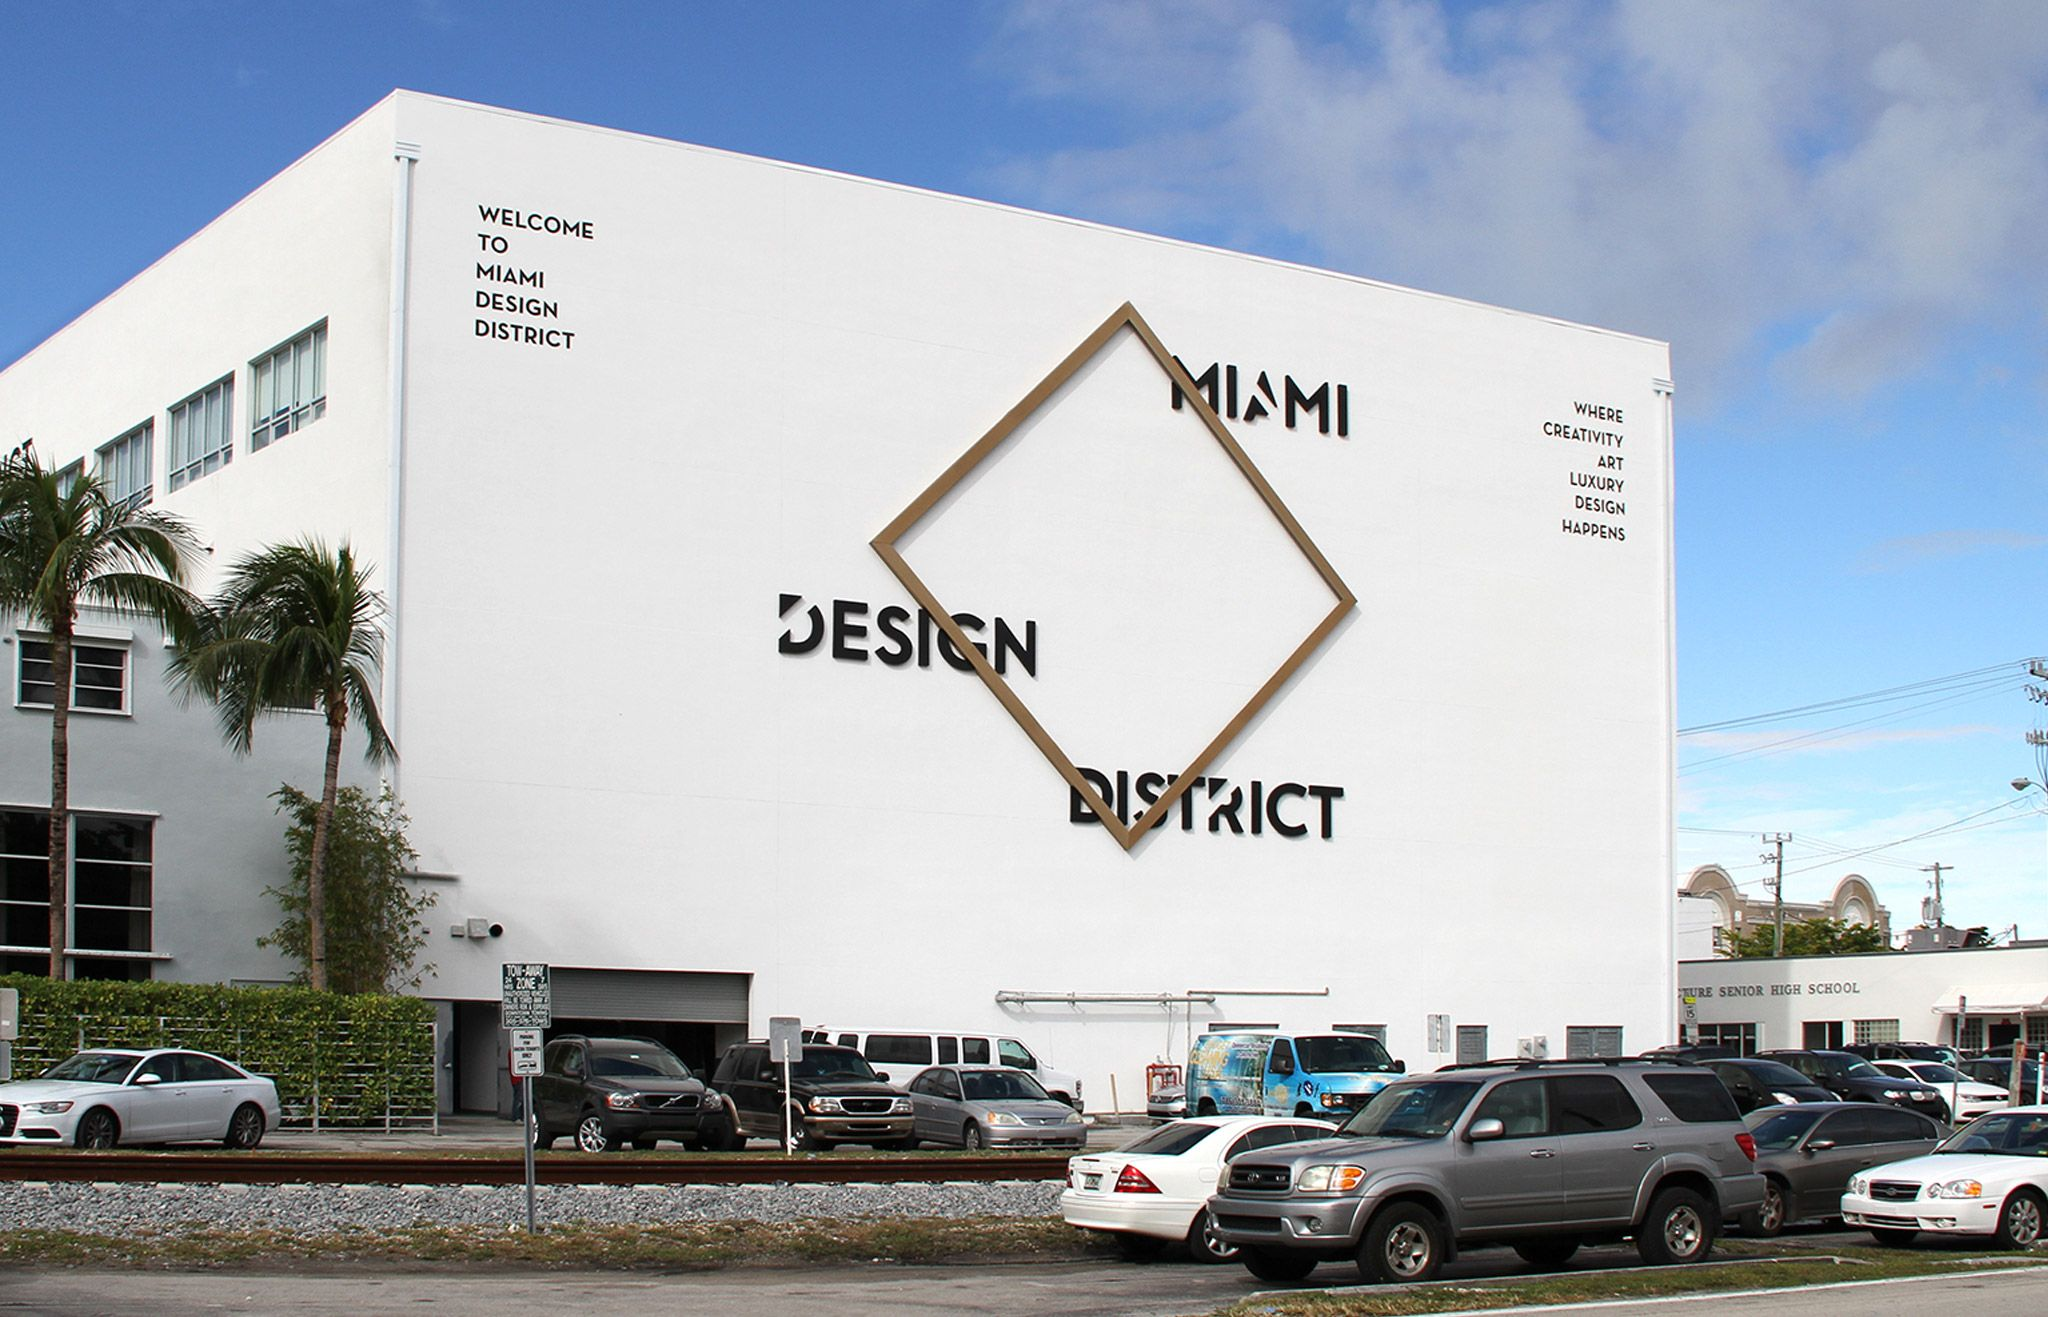 Furniture stores in miami florida - Miami Design District In Miami Fl